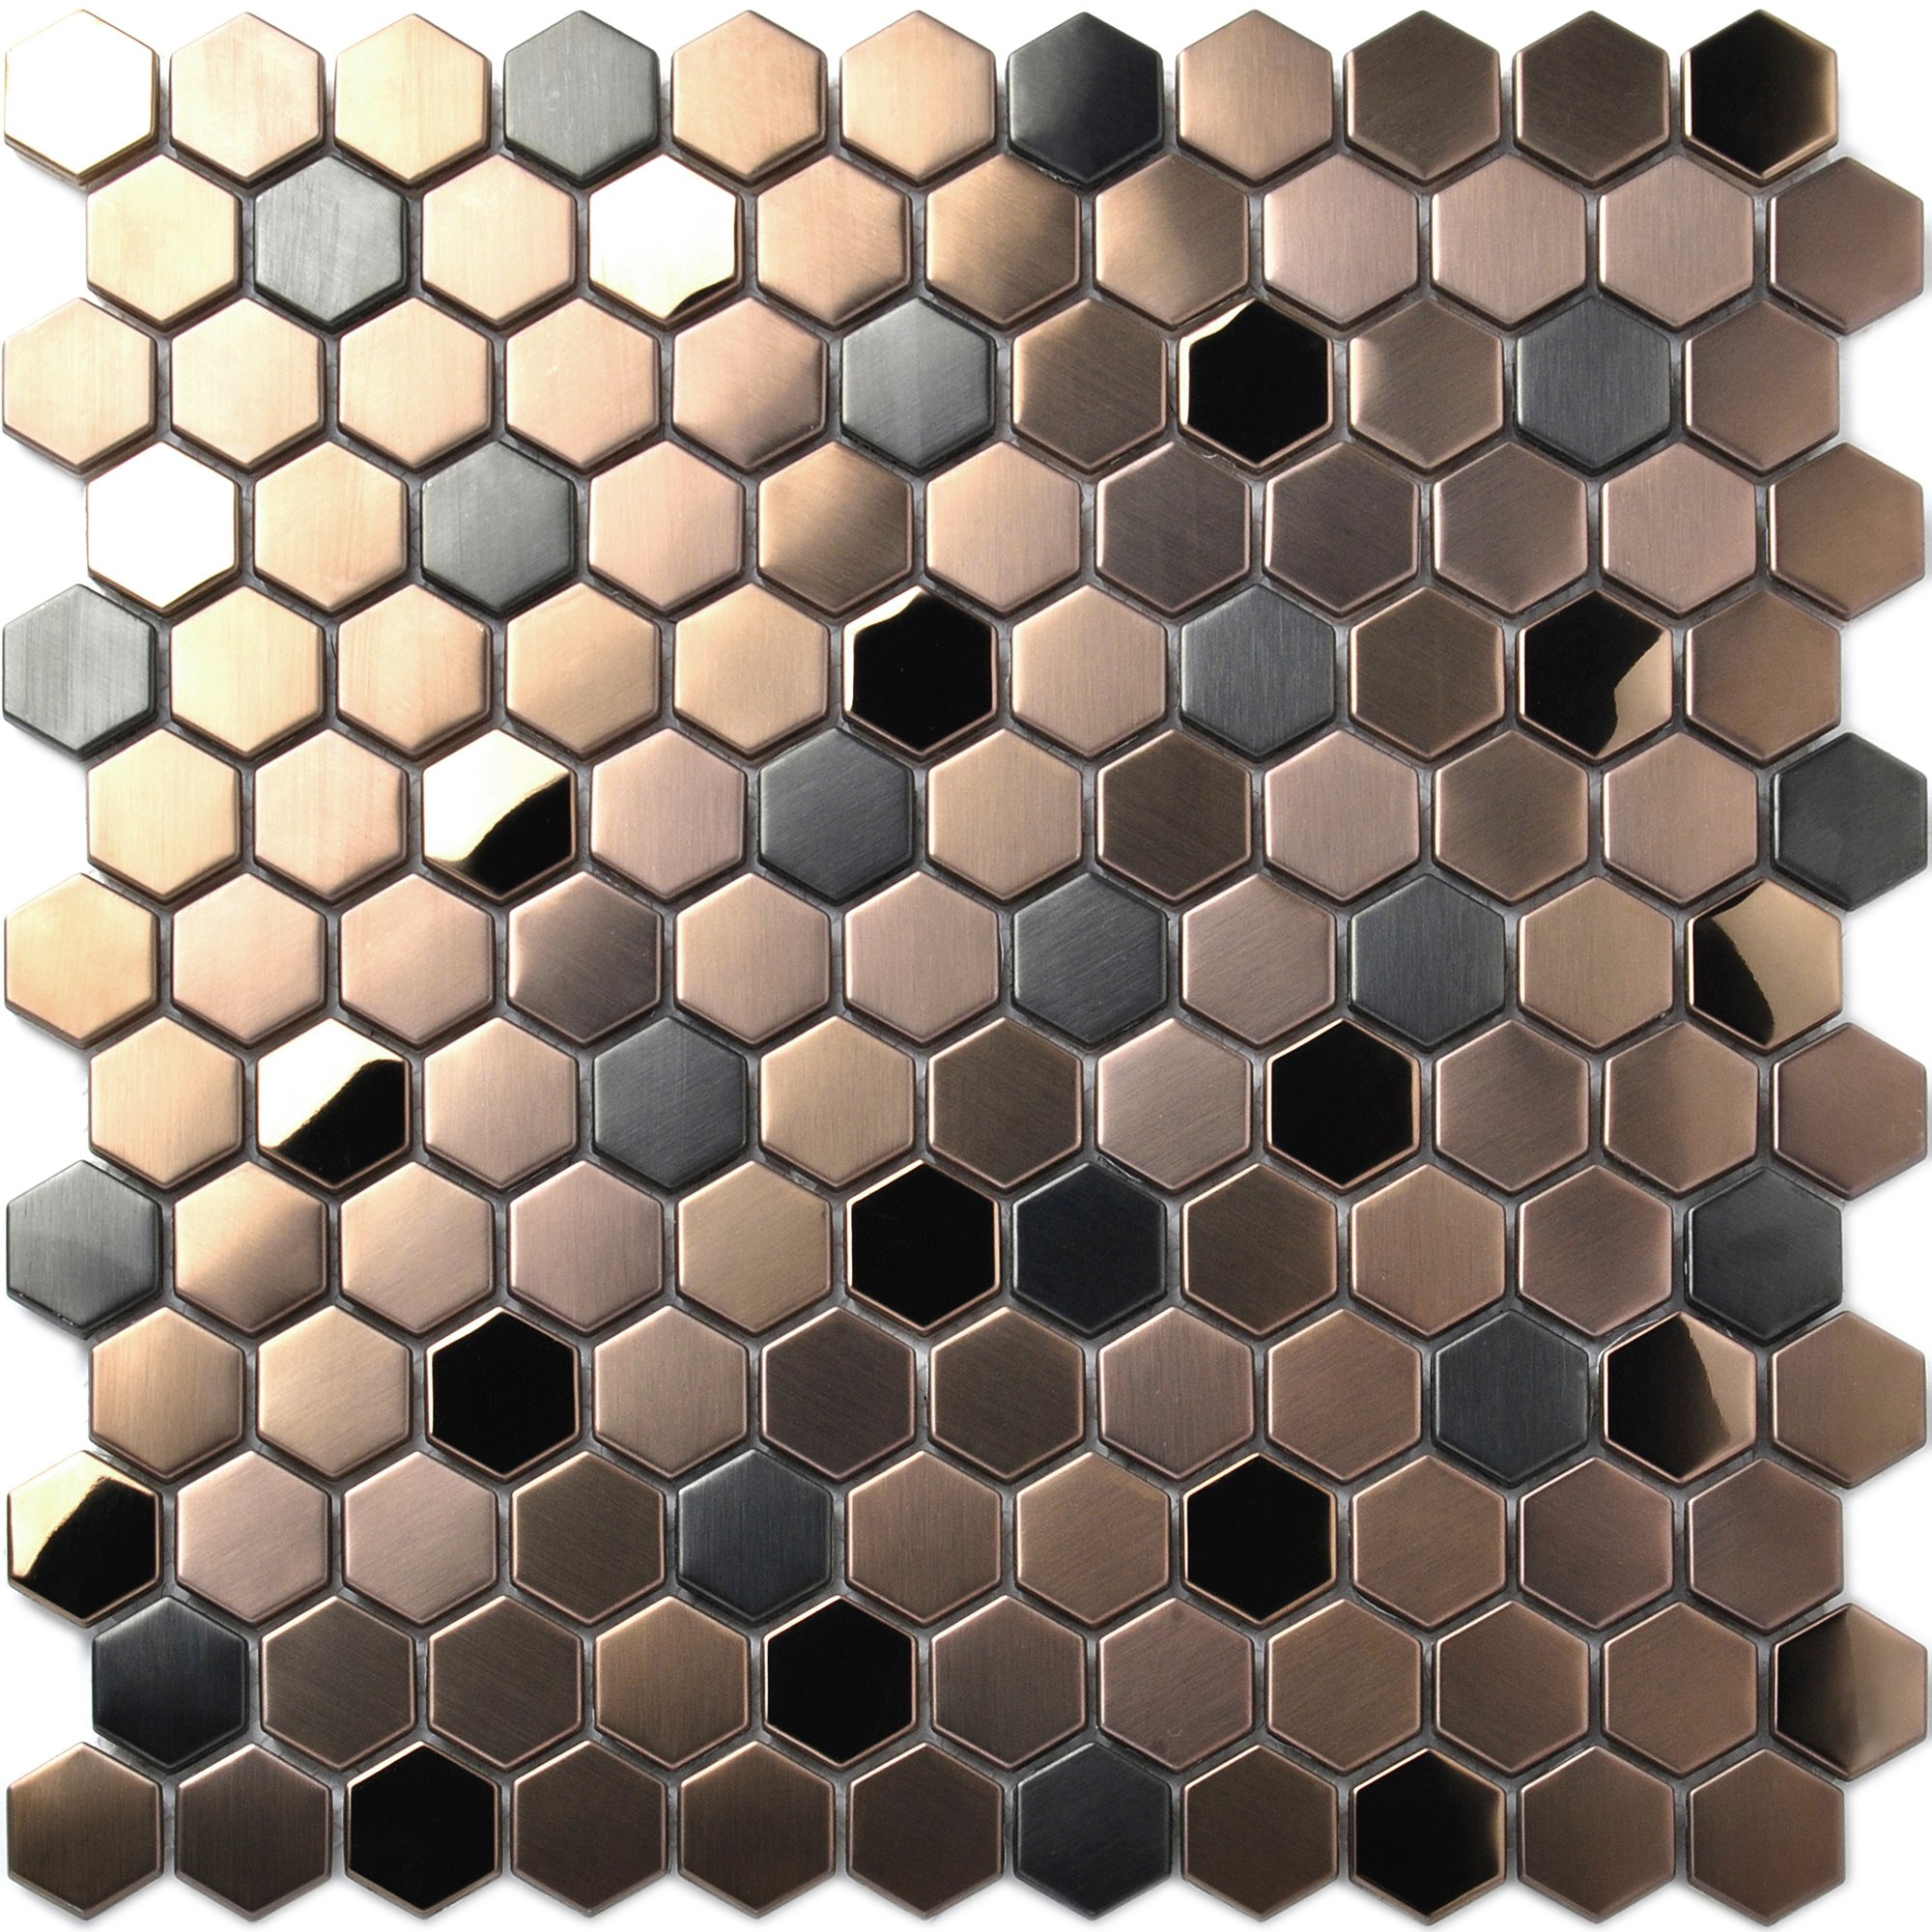 Hexagon Stainless Steel Brushed Mosaic Tile Bronze Copper Color Black Bathroom Shower Floor Tiles TSTMBT021 (1 Sample 12x12 Inches) by TST MOSAIC TILES